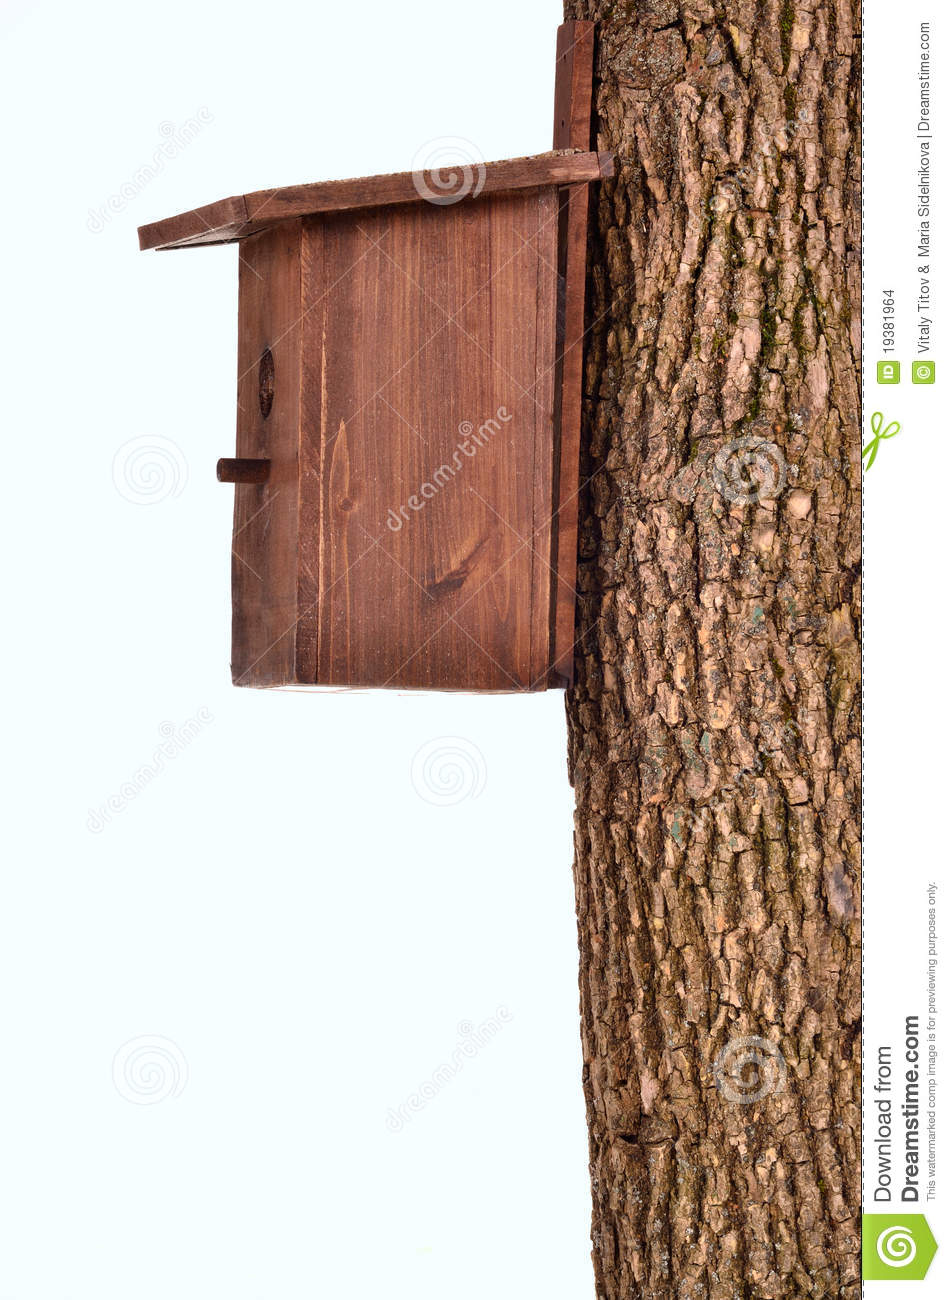 Wooden starling-house on a bole isolated